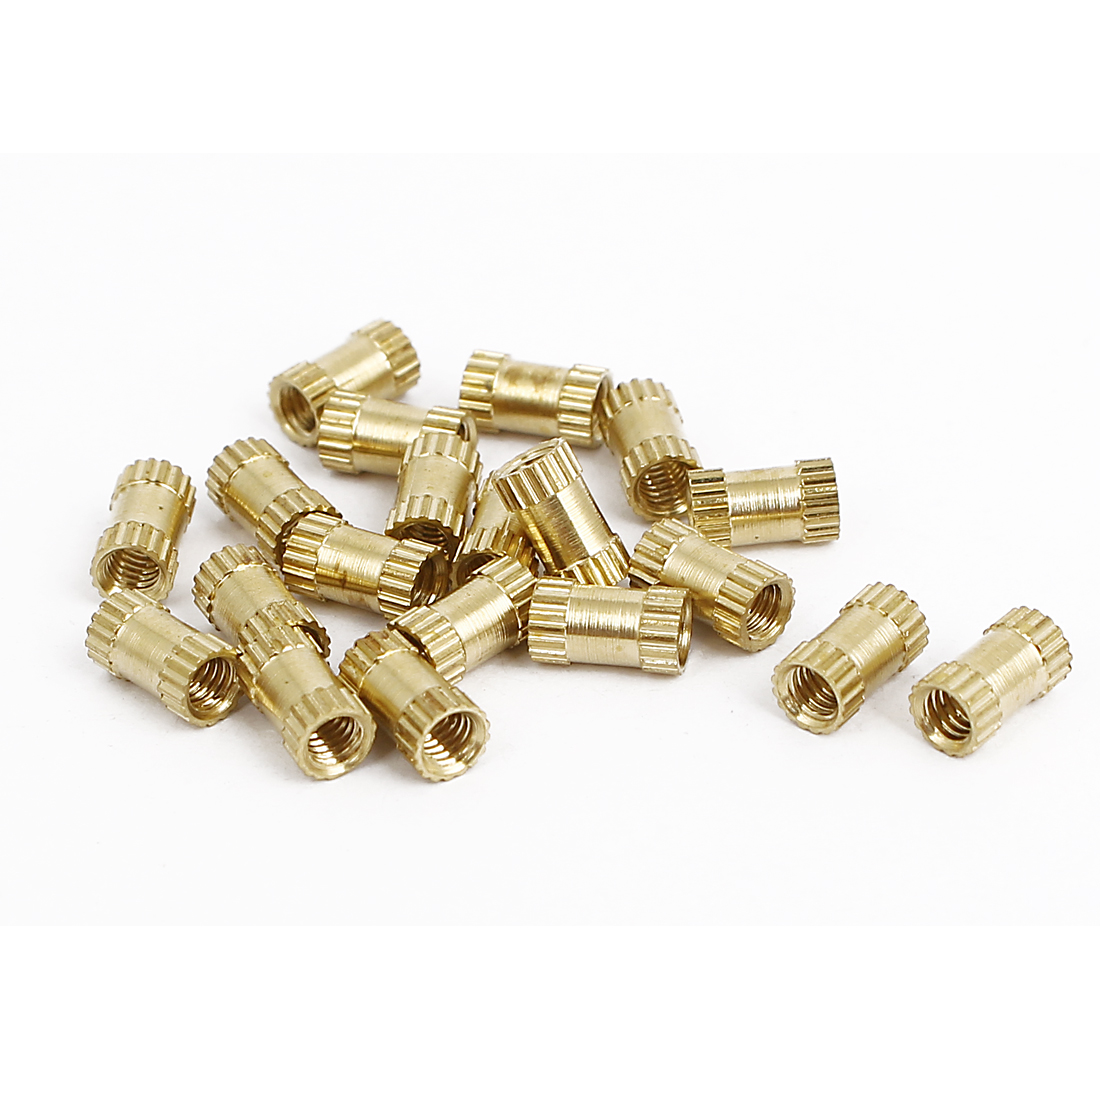 M2.5x6mmx3.5mm Female Threaded Brass Knurled Insert Embedded Nuts Gold Tone 20pcs